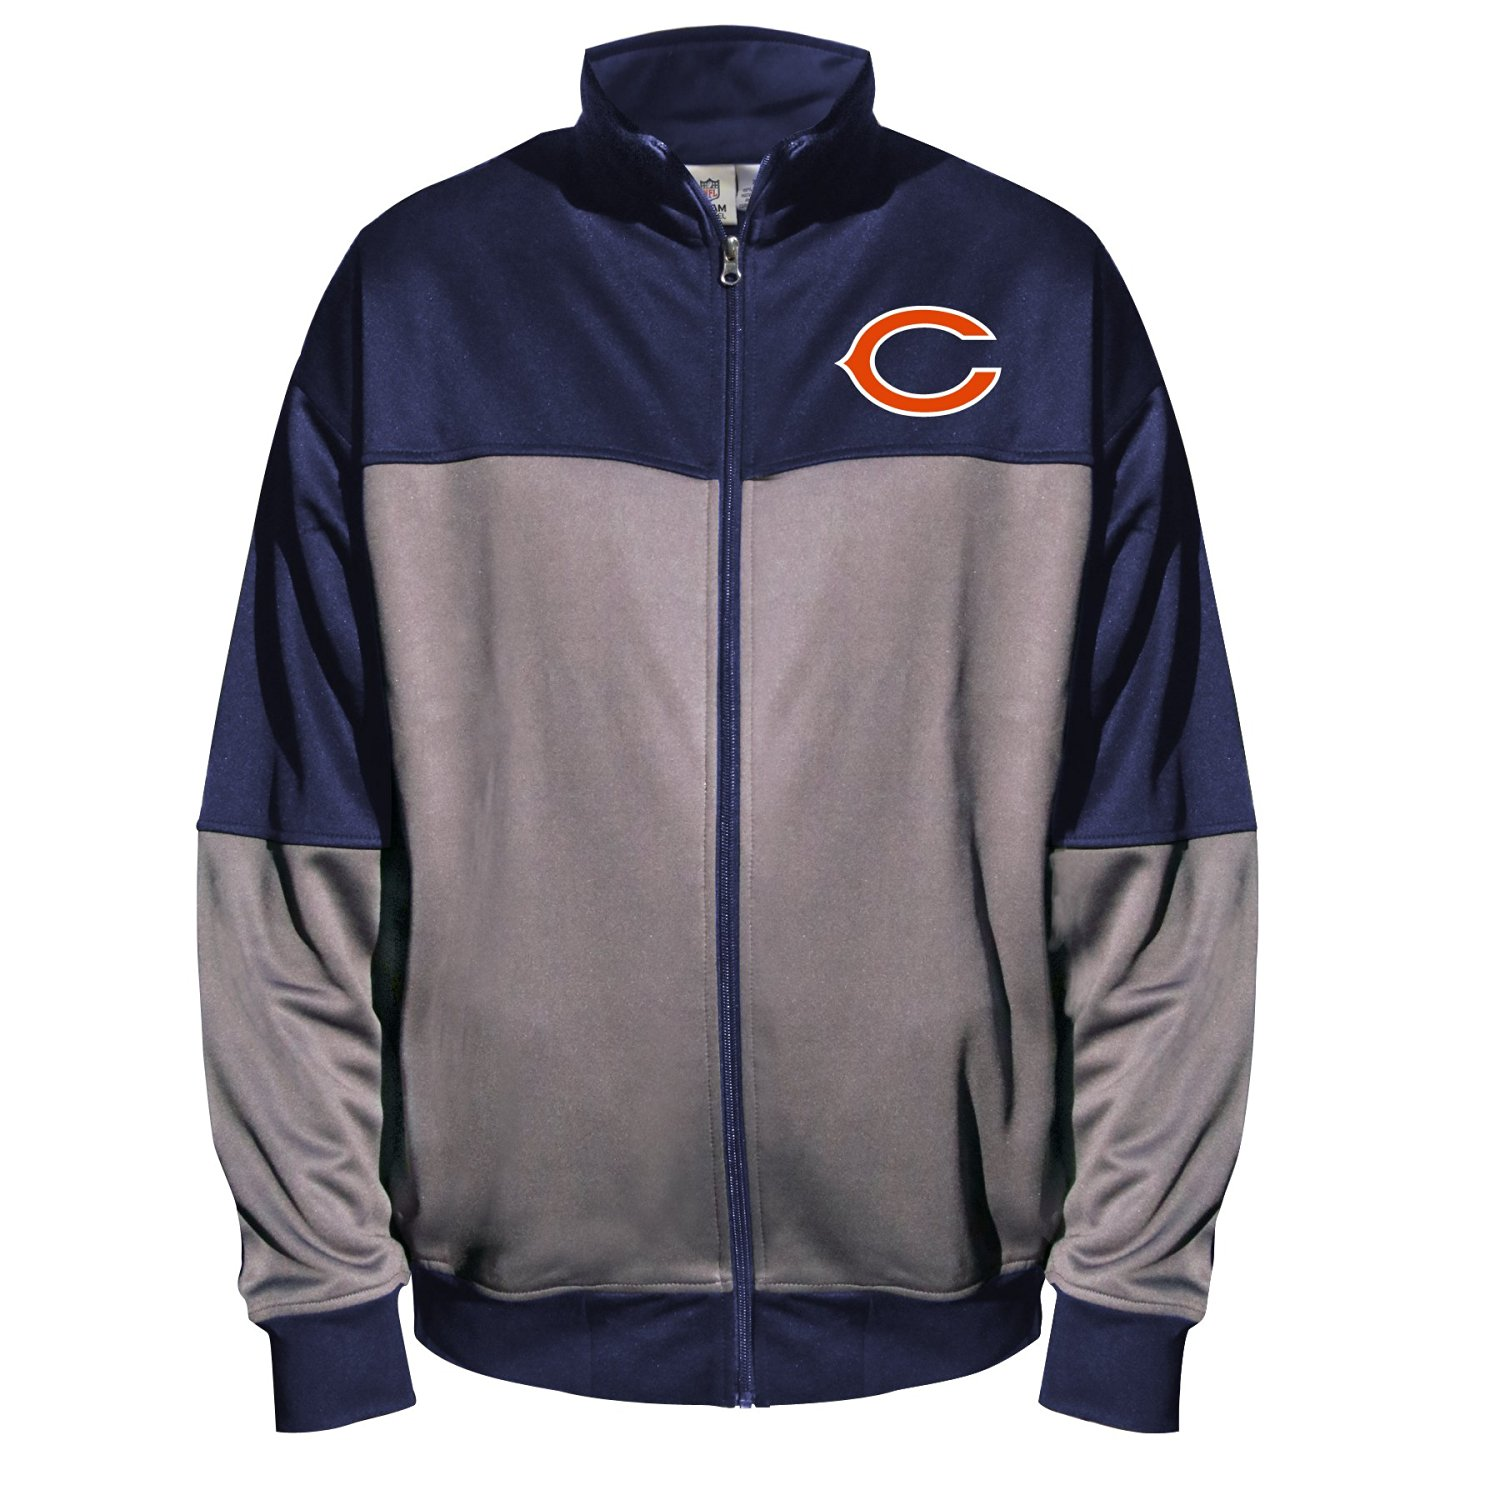 NFL Chicago Bears Unisex Poly fleece Track Jacket, CHARCOAL/Navy, 4X/Tall